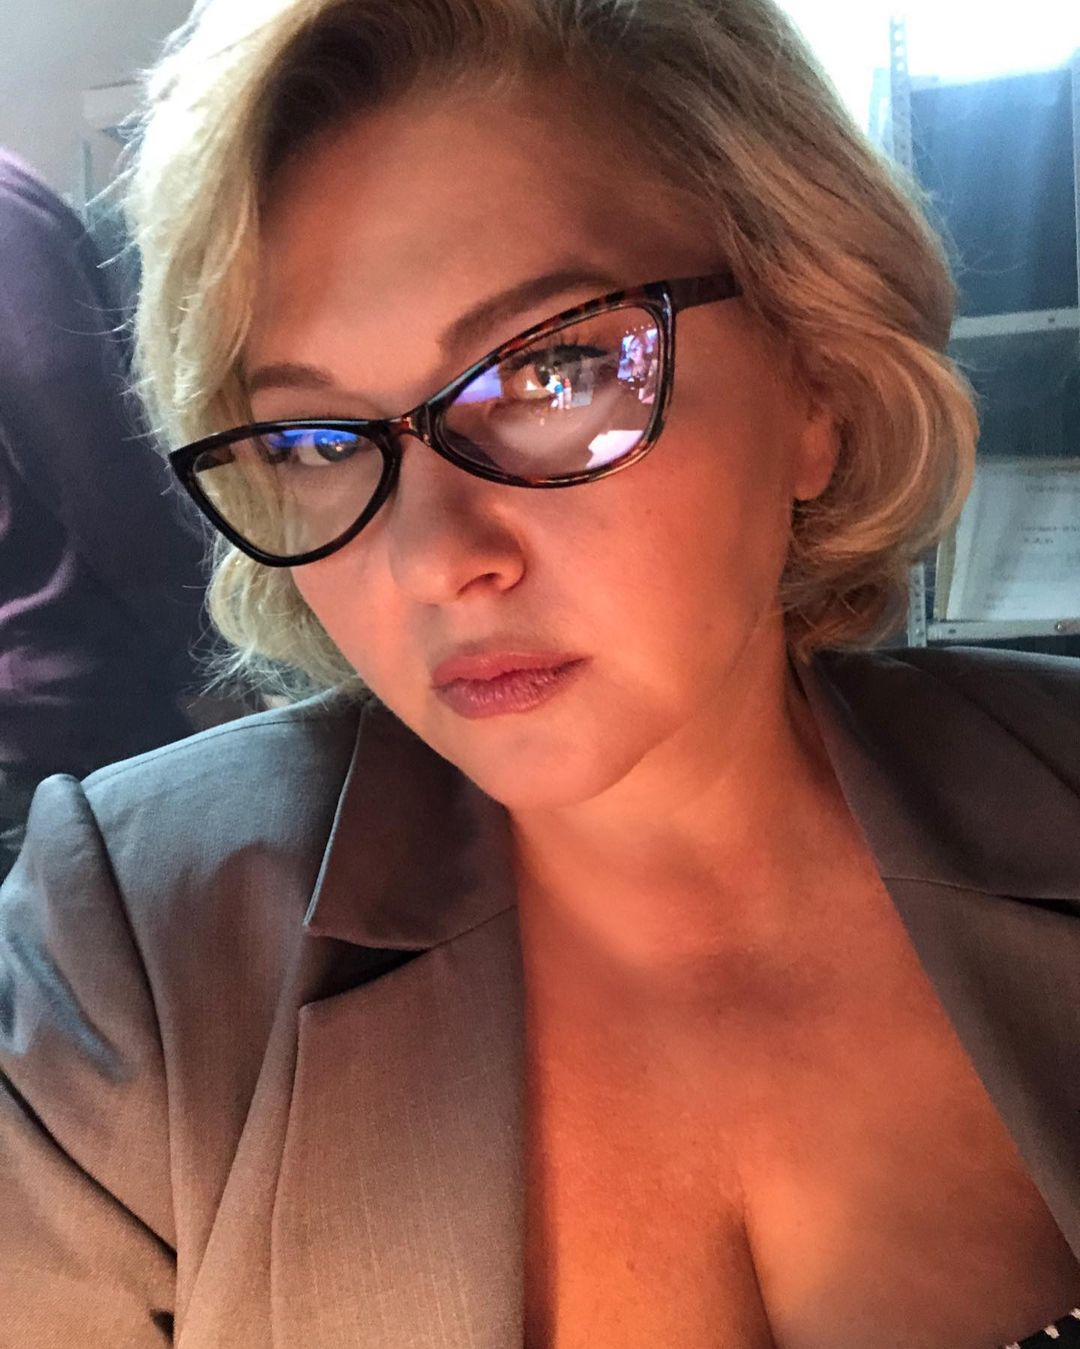 Marina Gaizidorskaya announced that the former stole an egg from her